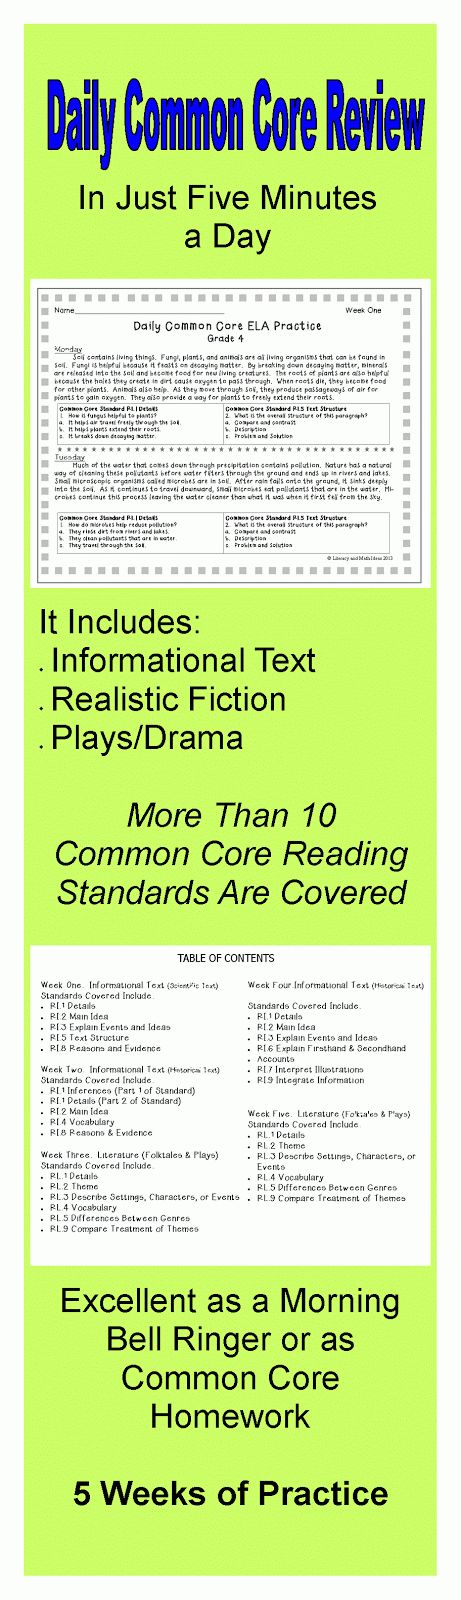 {Daily Common Core Reading Practice} OVER 10 COMMON CORE STANDARDS ARE COVERED. Informational Text, realistic fiction, historical fiction, plays/drama and more are included. Many standards repeat across the weeks for steady review. Students build content area knowledge as they review for Common Core. FIVE WEEKS ARE INCLUDED $4.99